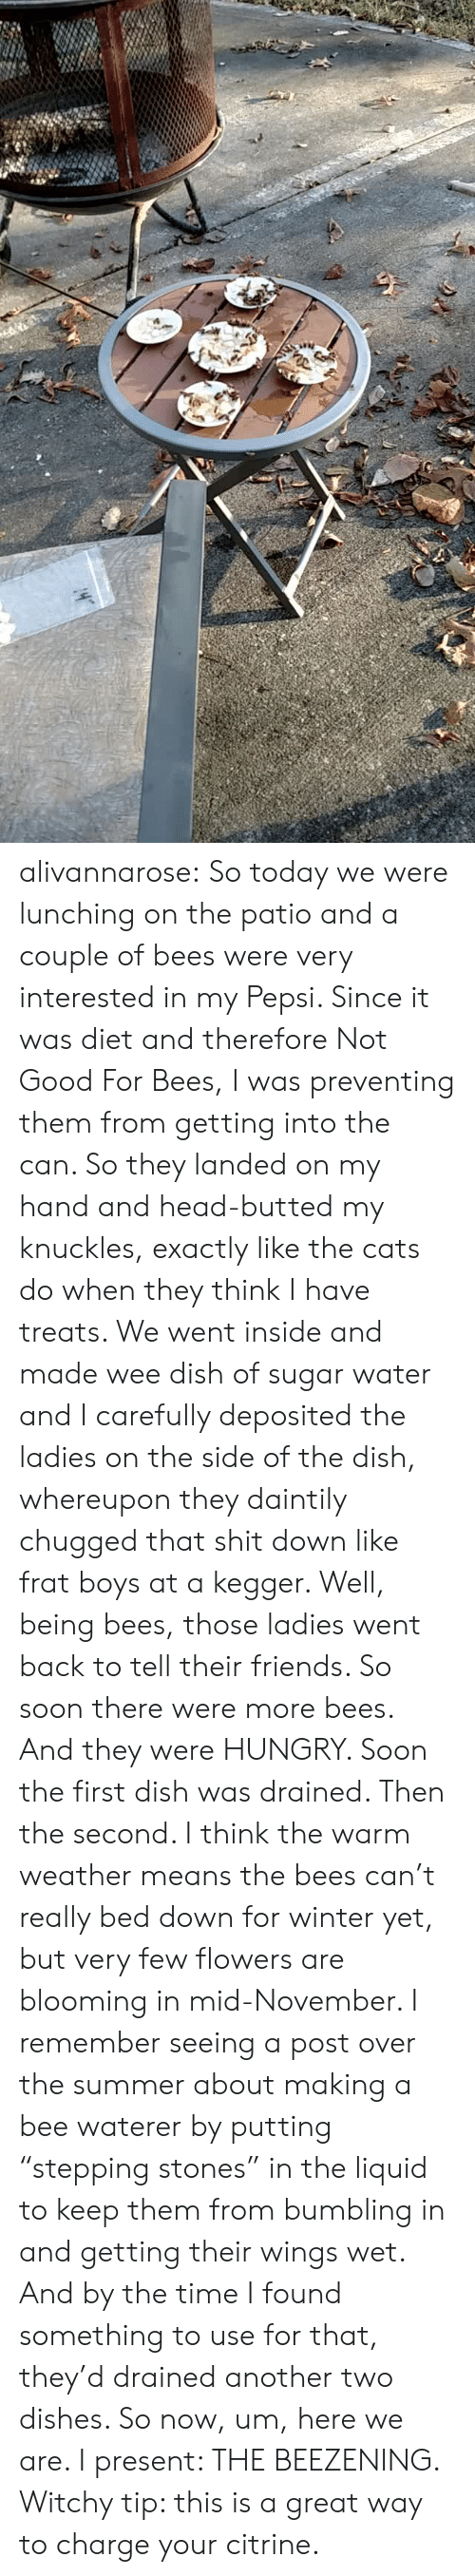 "frat: alivannarose:  So today we were lunching on the patio and a couple of bees were very interested in my Pepsi. Since it was diet and therefore Not Good For Bees, I was preventing them from getting into the can. So they landed on my hand and head-butted my knuckles, exactly like the cats do when they think I have treats. We went inside and made wee dish of sugar water and I carefully deposited the ladies on the side of the dish, whereupon they daintily chugged that shit down like frat boys at a kegger. Well, being bees, those ladies went back to tell their friends. So soon there were more bees. And they were HUNGRY. Soon the first dish was drained. Then the second. I think the warm weather means the bees can't really bed down for winter yet, but very few flowers are blooming in mid-November.  I remember seeing a post over the summer about making a bee waterer by putting ""stepping stones"" in the liquid to keep them from bumbling in and getting their wings wet. And by the time I found something to use for that, they'd drained another two dishes. So now, um, here we are.  I present: THE BEEZENING.   Witchy tip: this is a great way to charge your citrine."